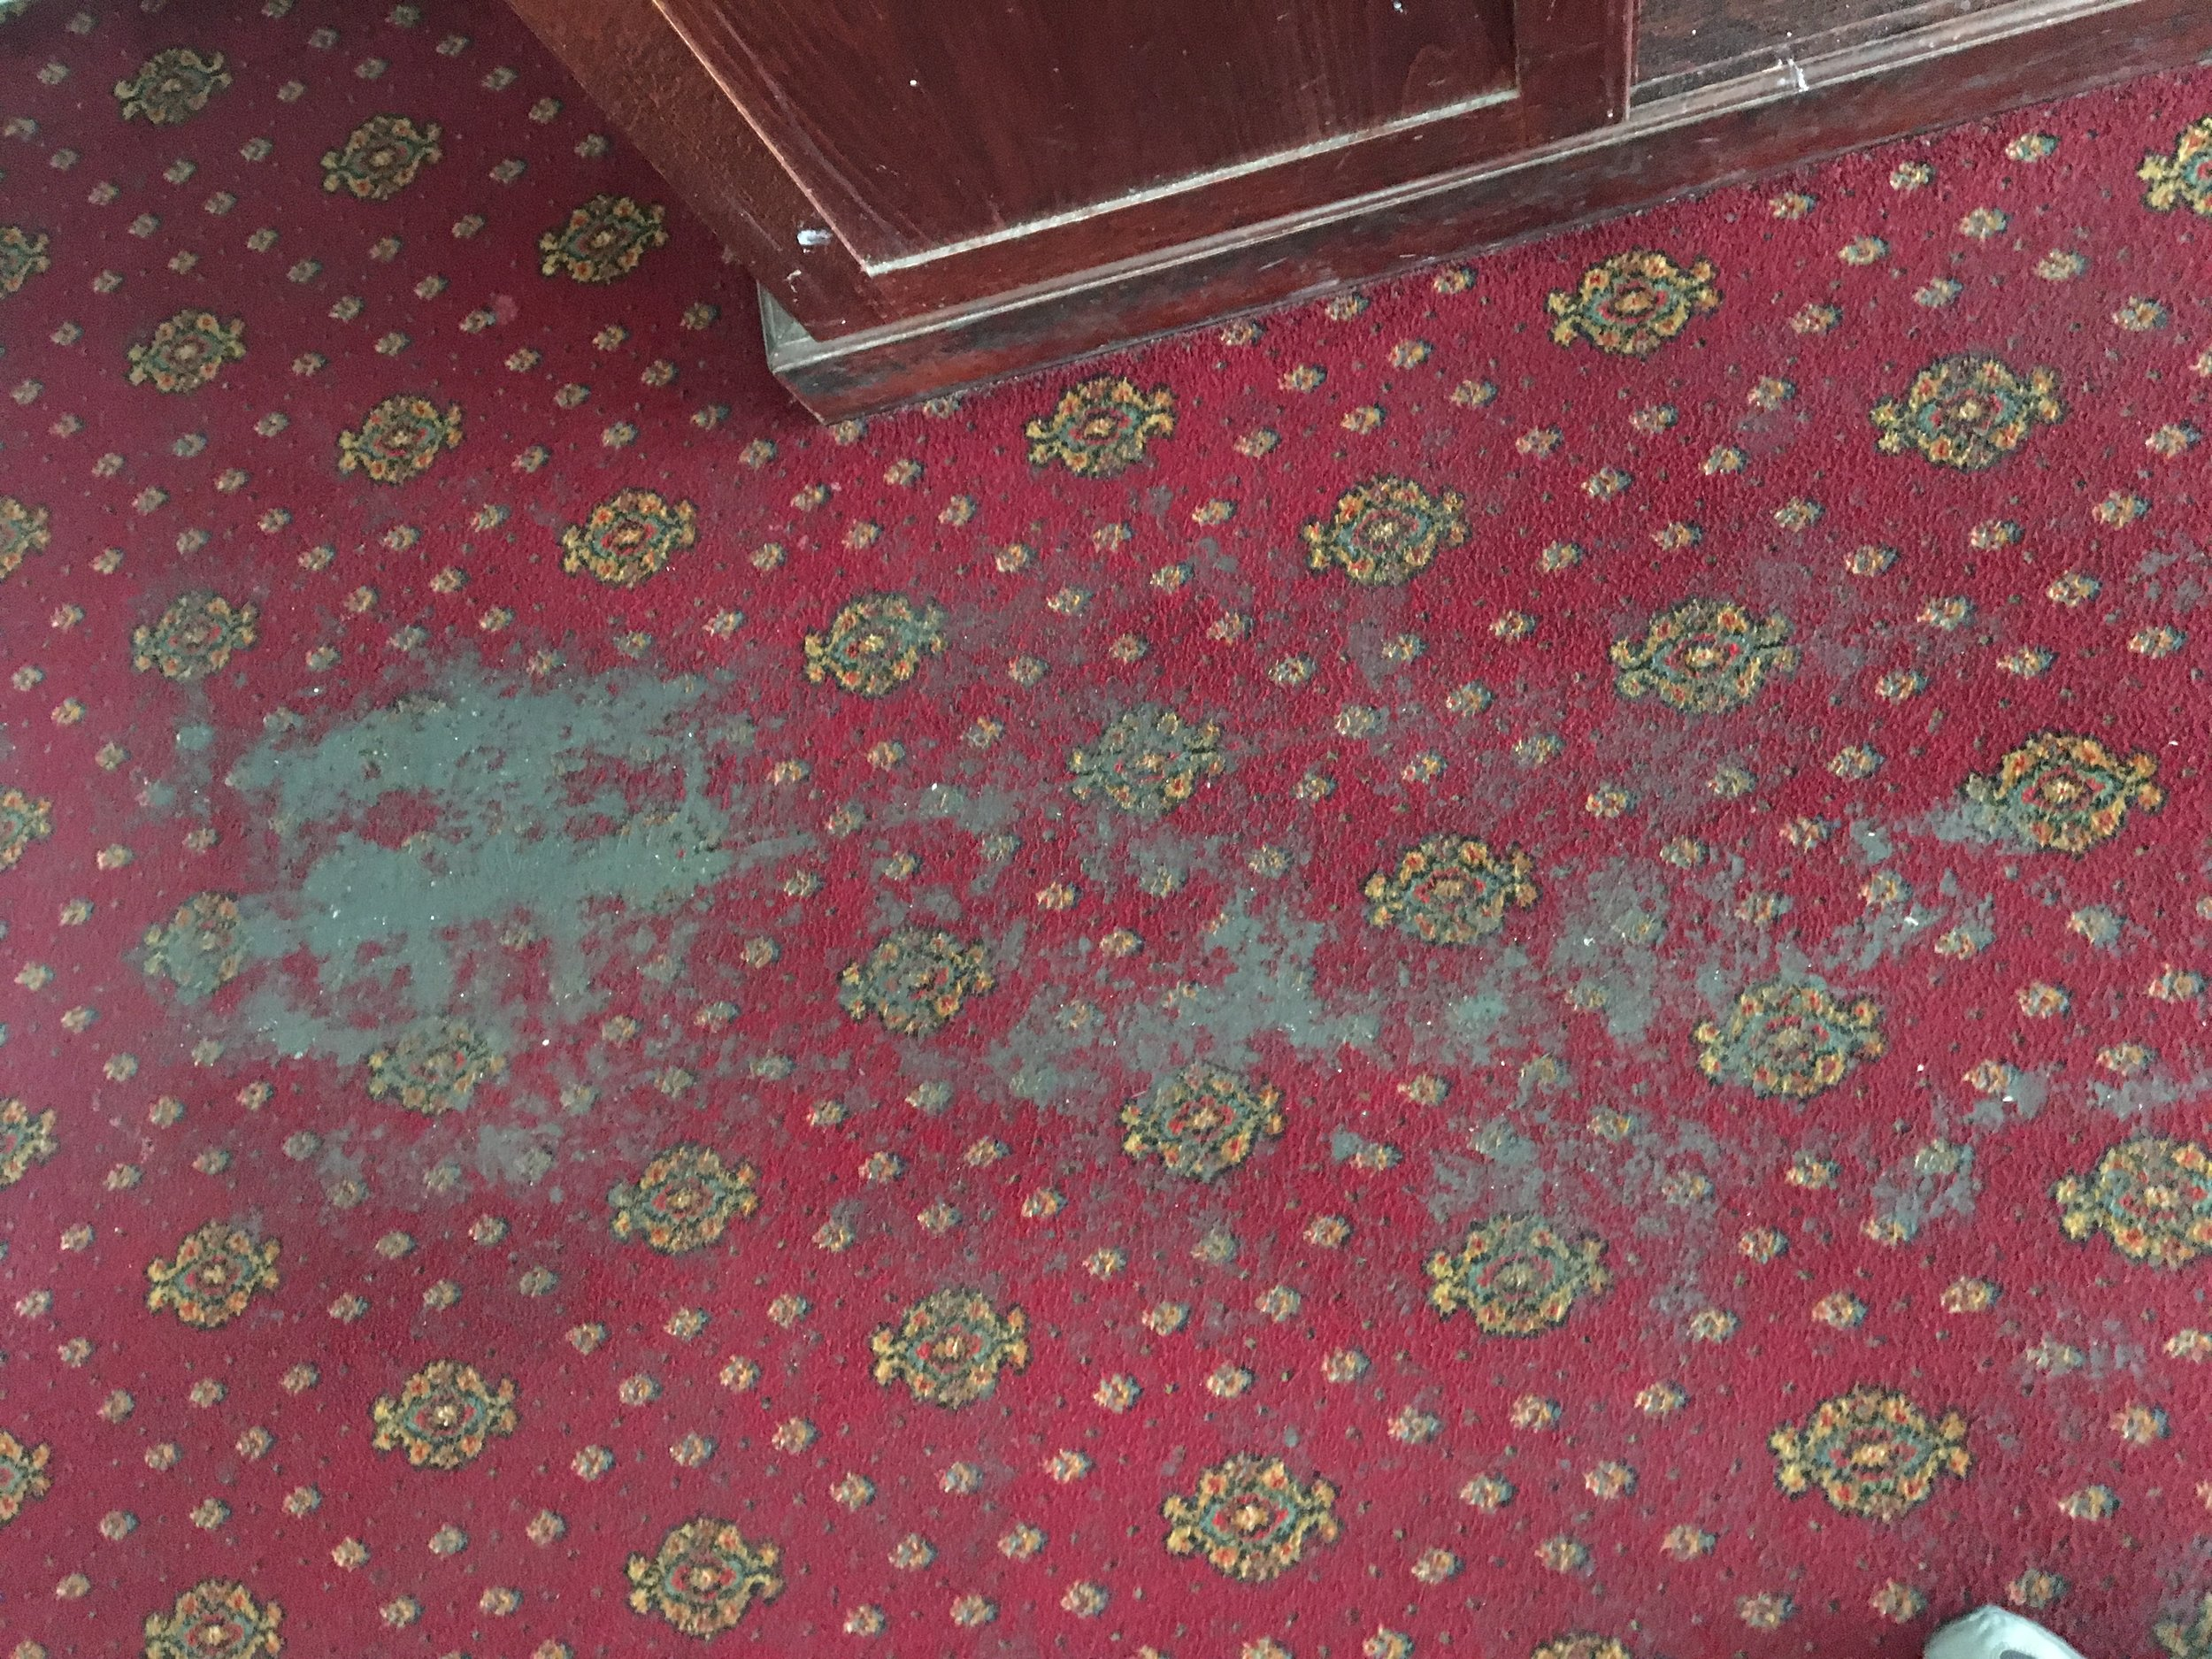 Grease and foodstuffs on a restaurant carpet